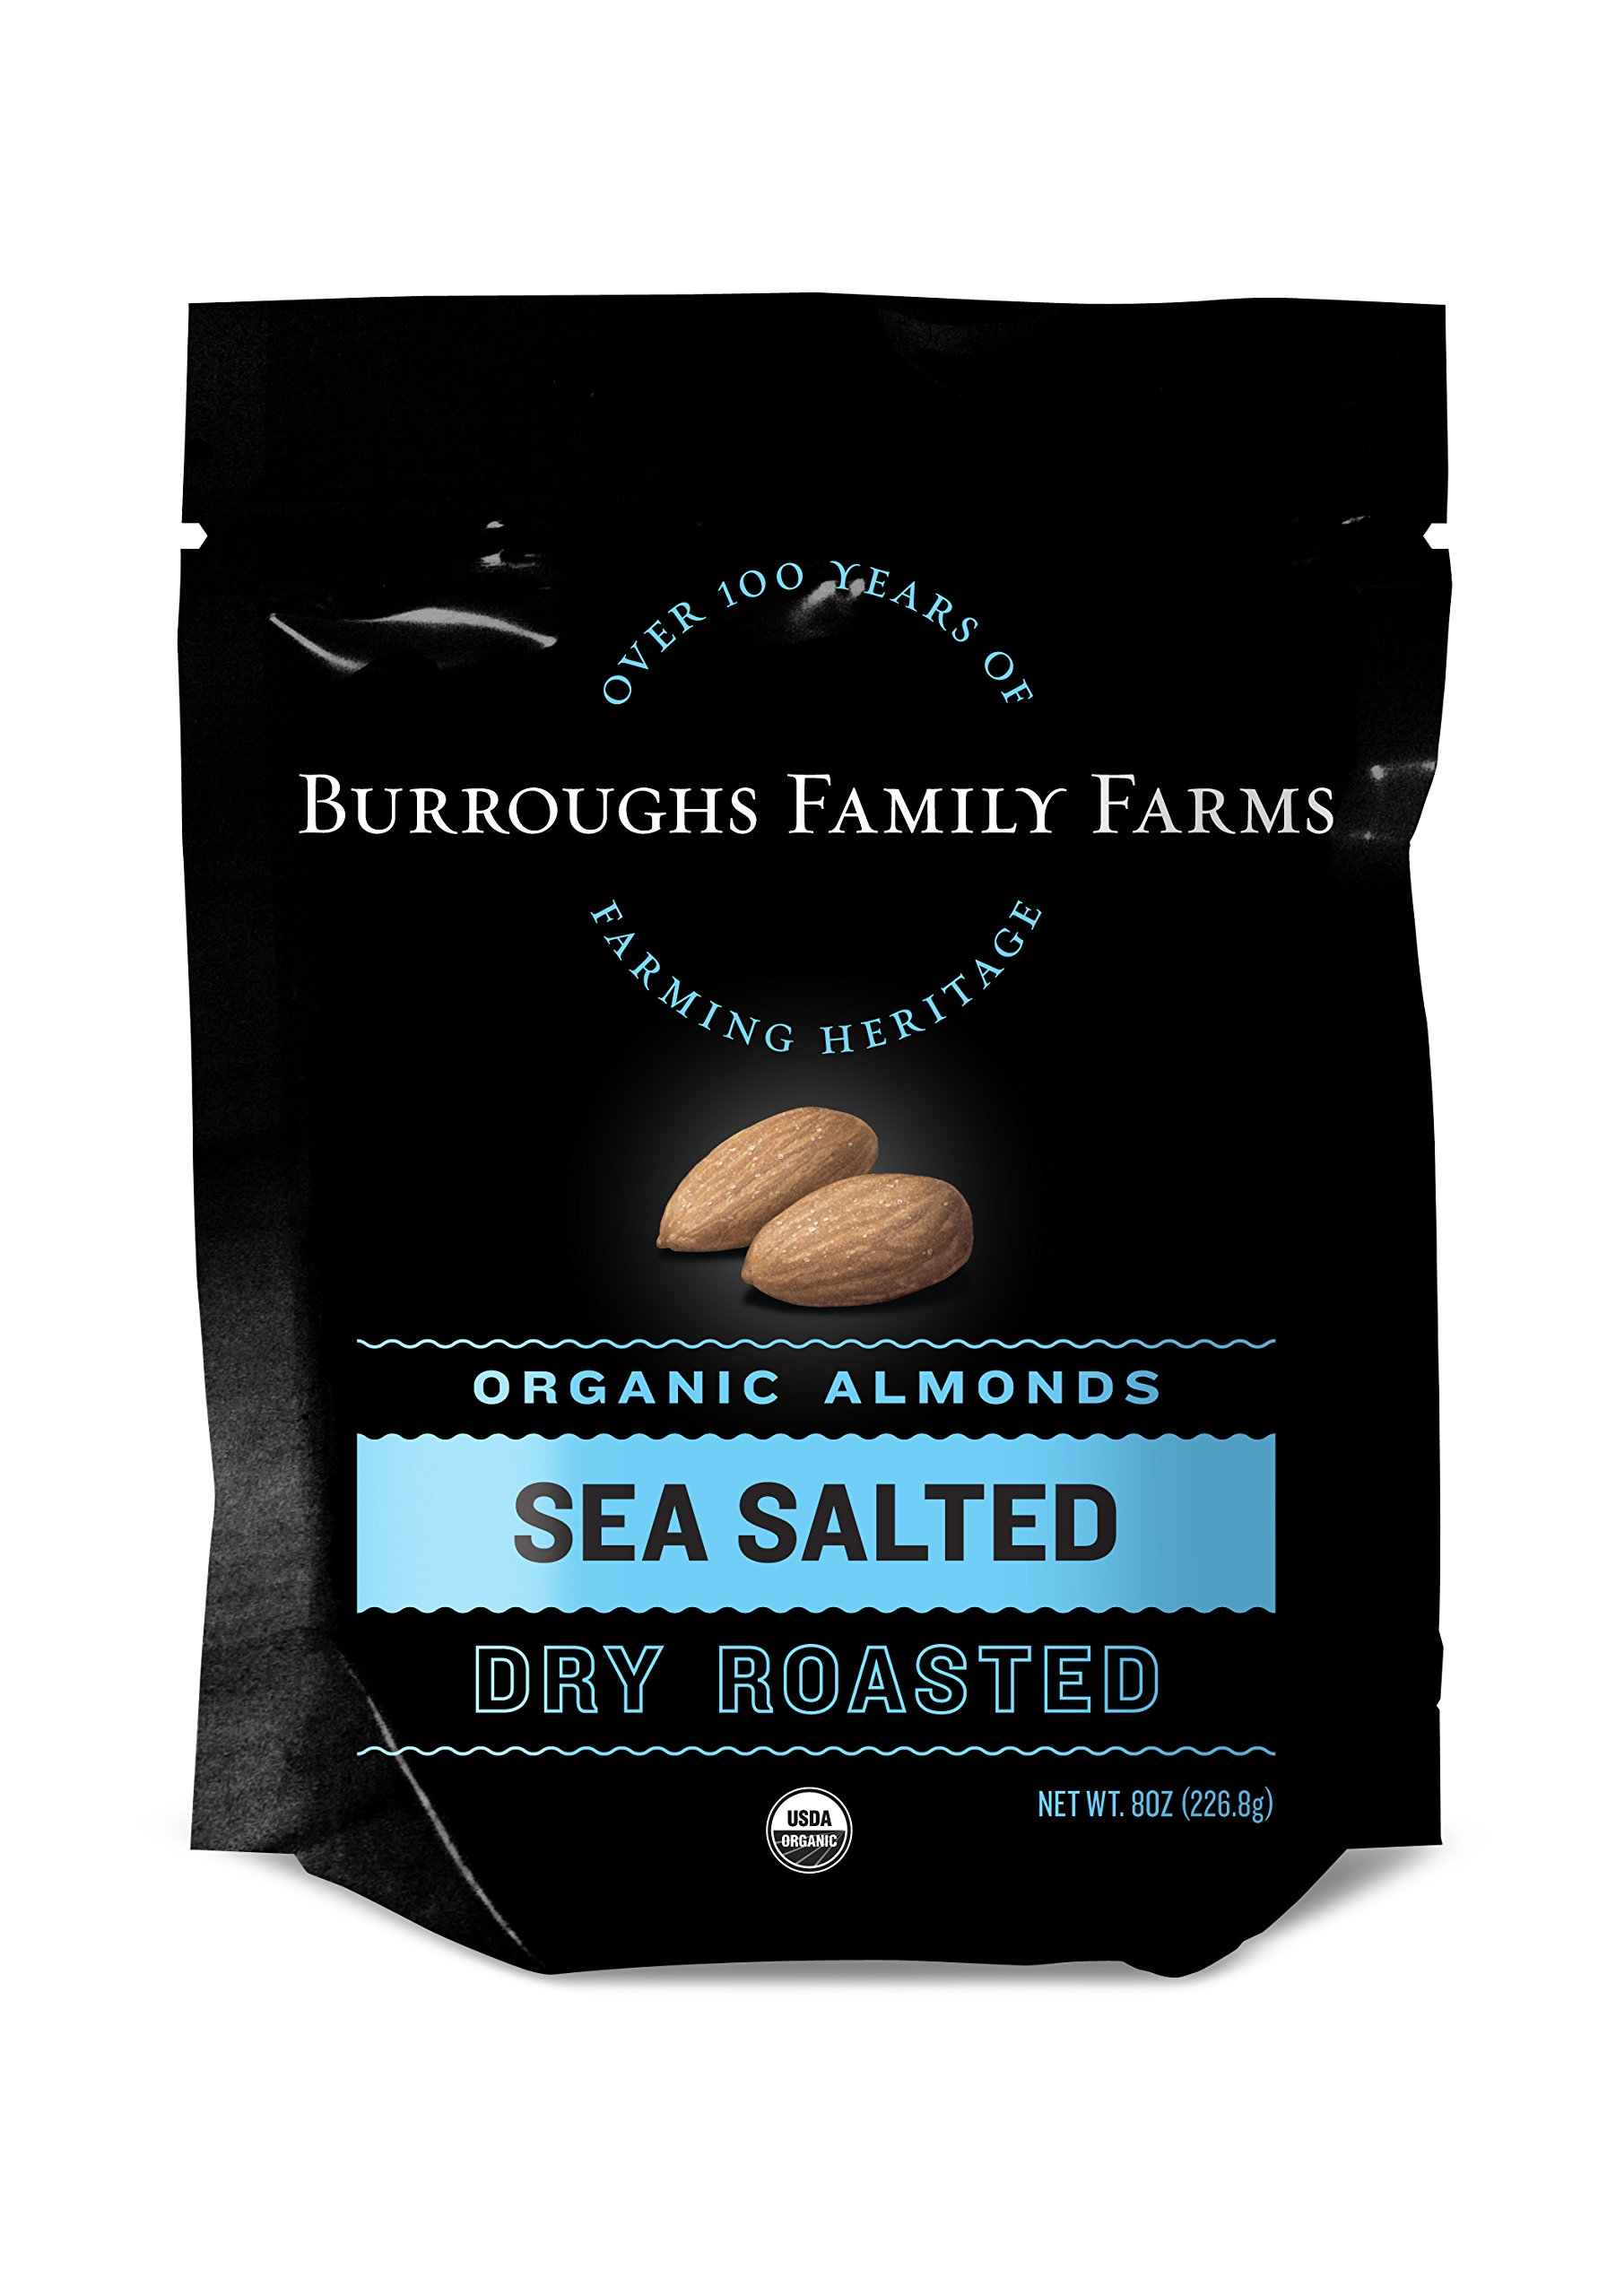 Sea Salted Dry Roasted Organic Almonds, 8oz